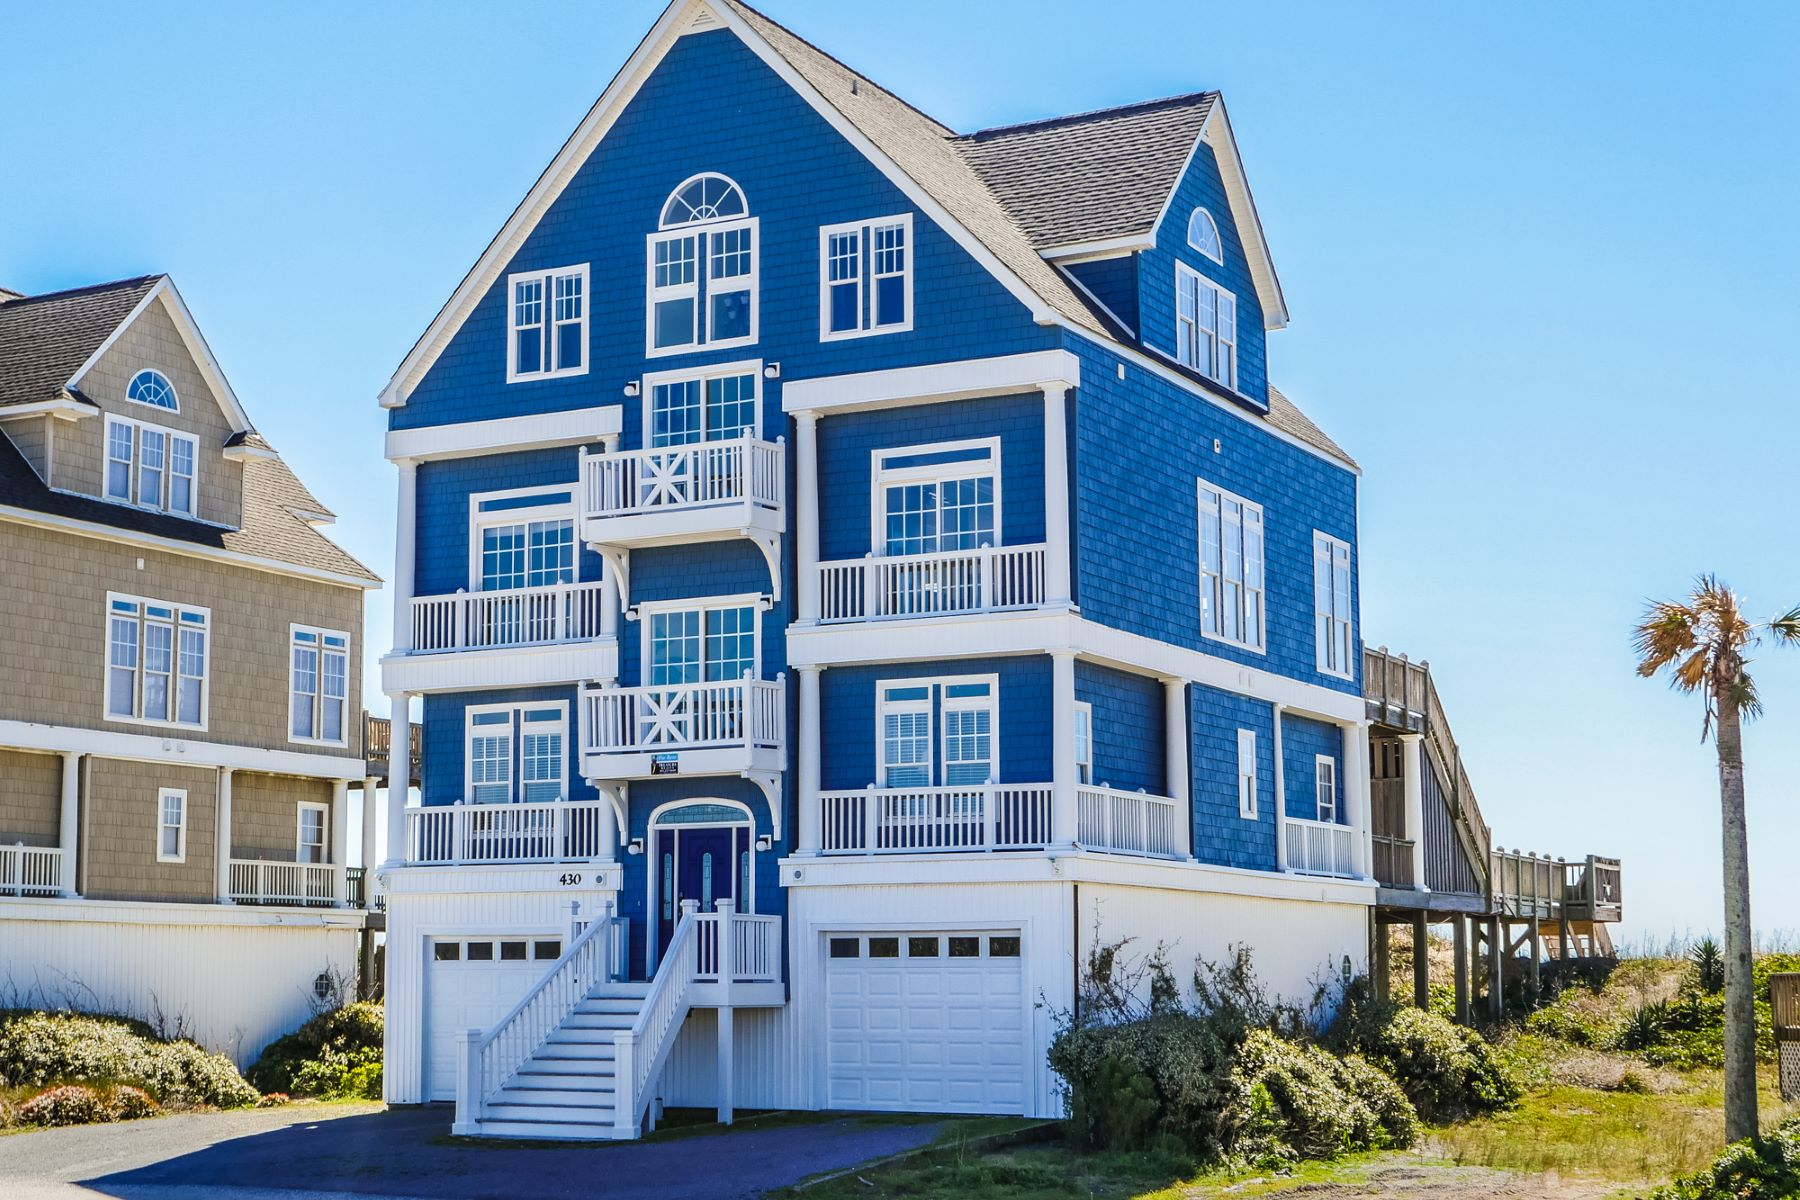 Single Family Home for Sale at Oceanfront Magnificence 430 New River Inlet Rd N Topsail Beach, North Carolina, 28460 United States